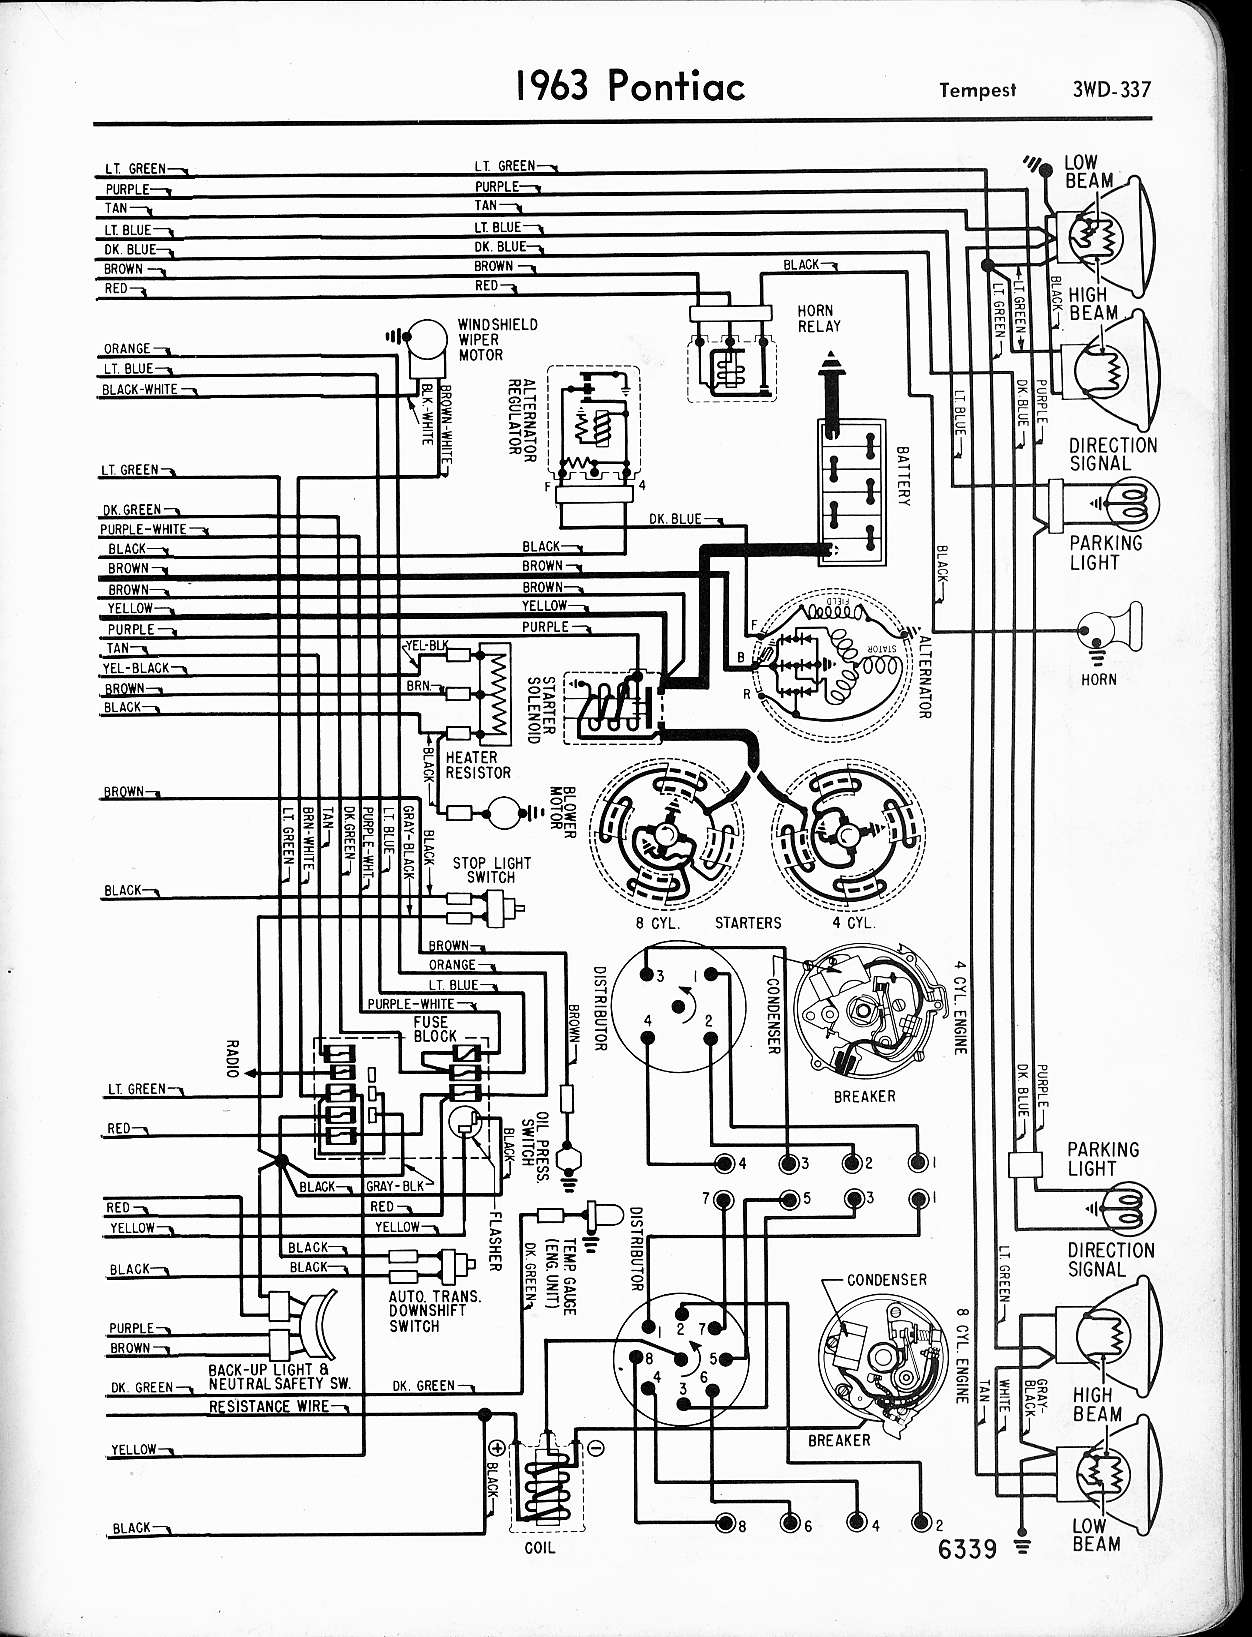 Pontiac Reverb Wiring Diagram Opinions About Wiring Diagram \u2022 1997  Pontiac Grand Prix Diagram 1970 Pontiac Grand Prix Wiring Diagram